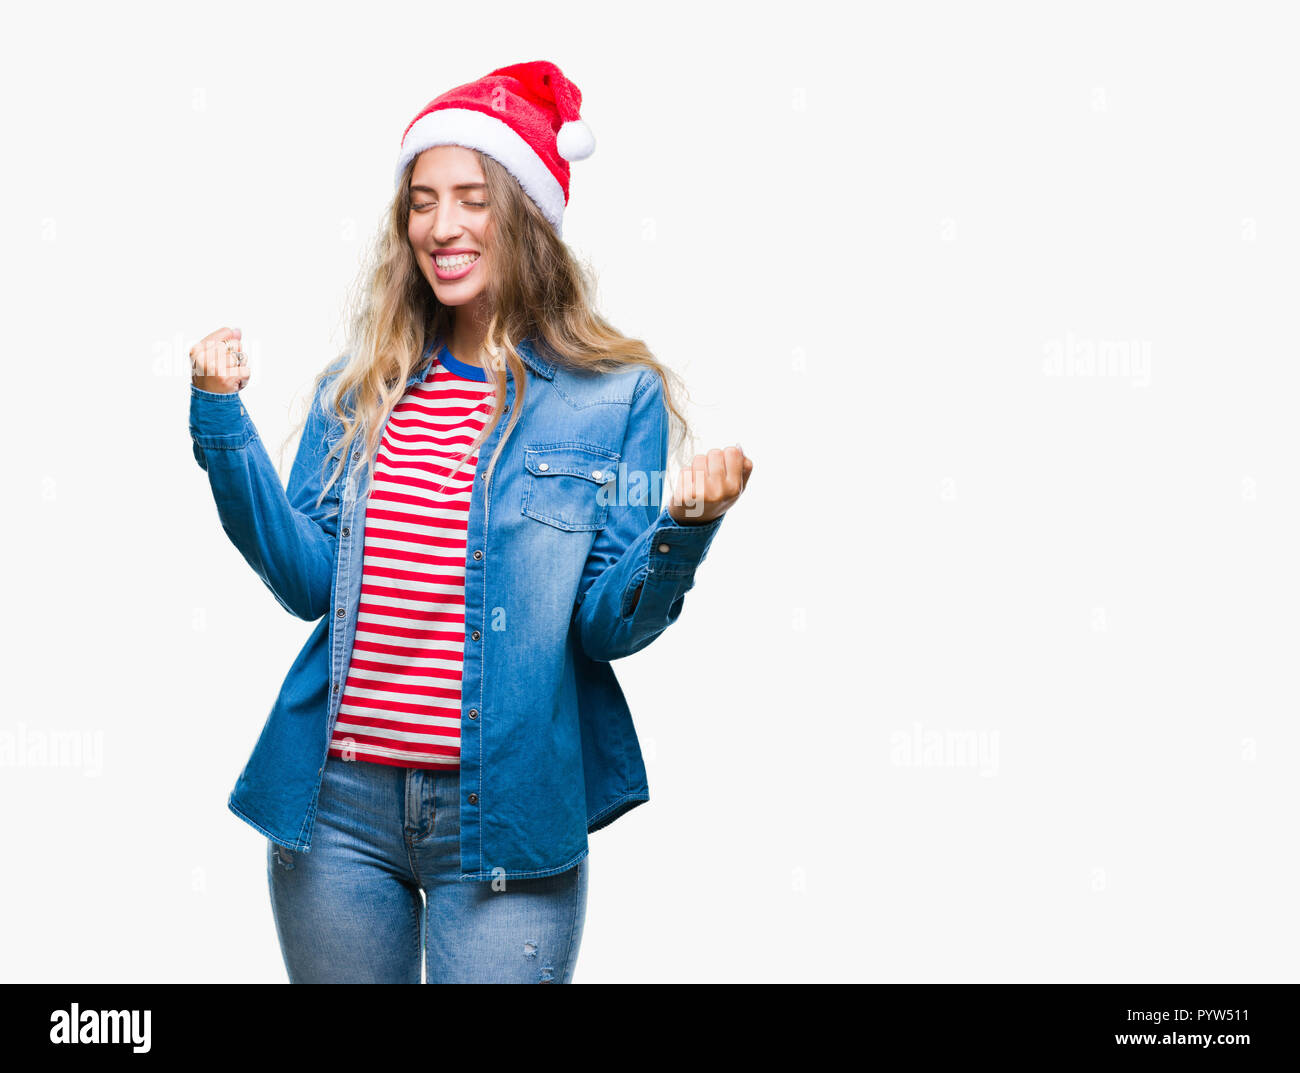 Beautiful young blonde woman wearing christmas hat over isolated background very happy and excited doing winner gesture with arms raised, smiling and  - Stock Image